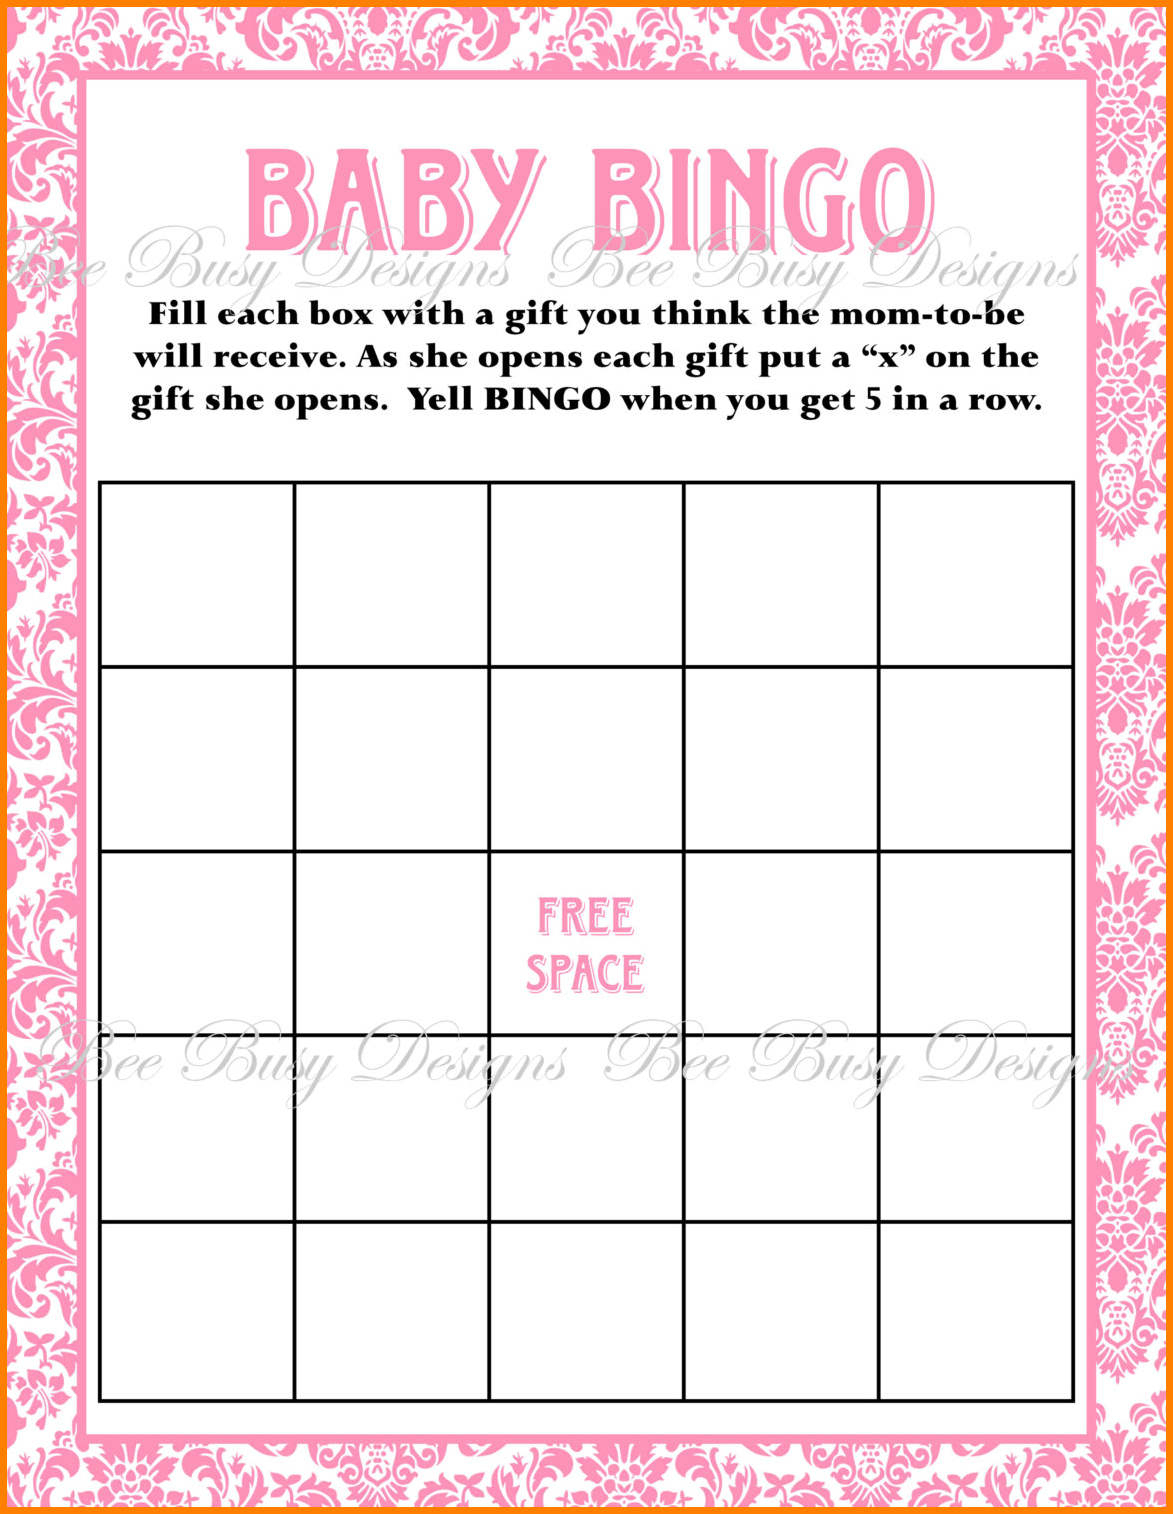 Free Printable Blank Baby Shower Bingo Cards - Baby Shower Ideas - Free Printable Baby Shower Bingo Cards